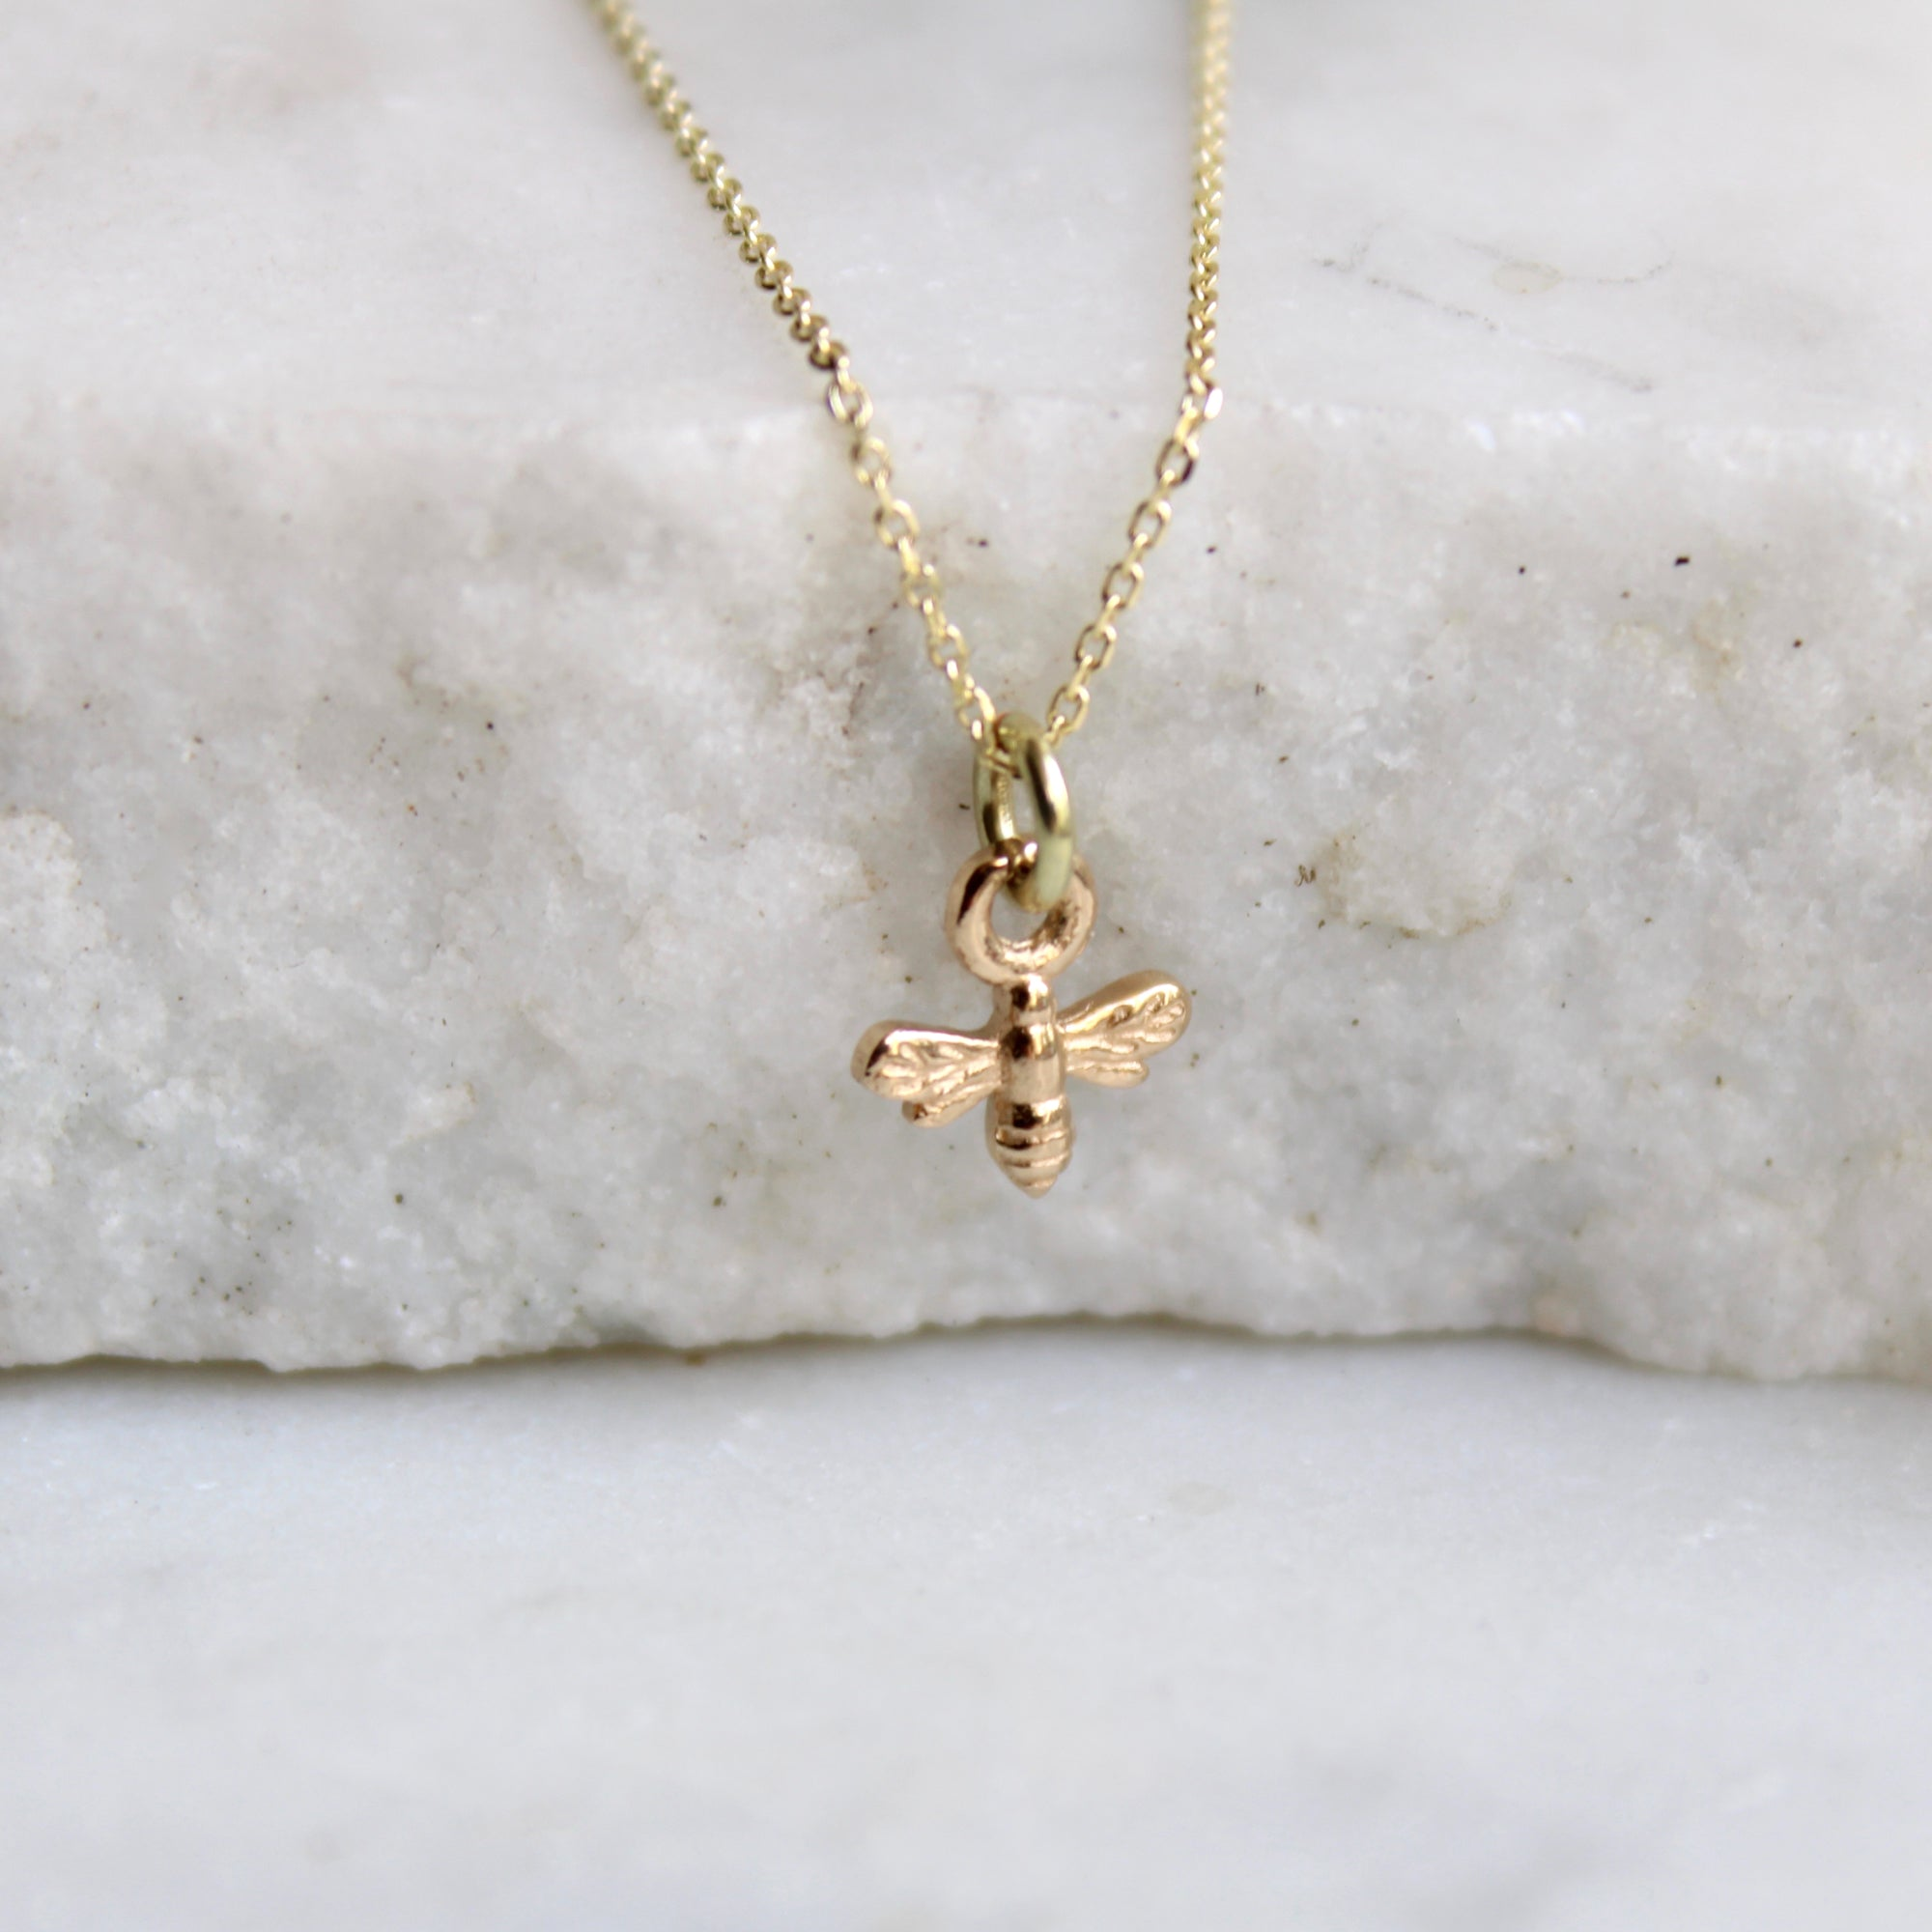 Mini Bee Charm Necklace 14ct Solid Gold